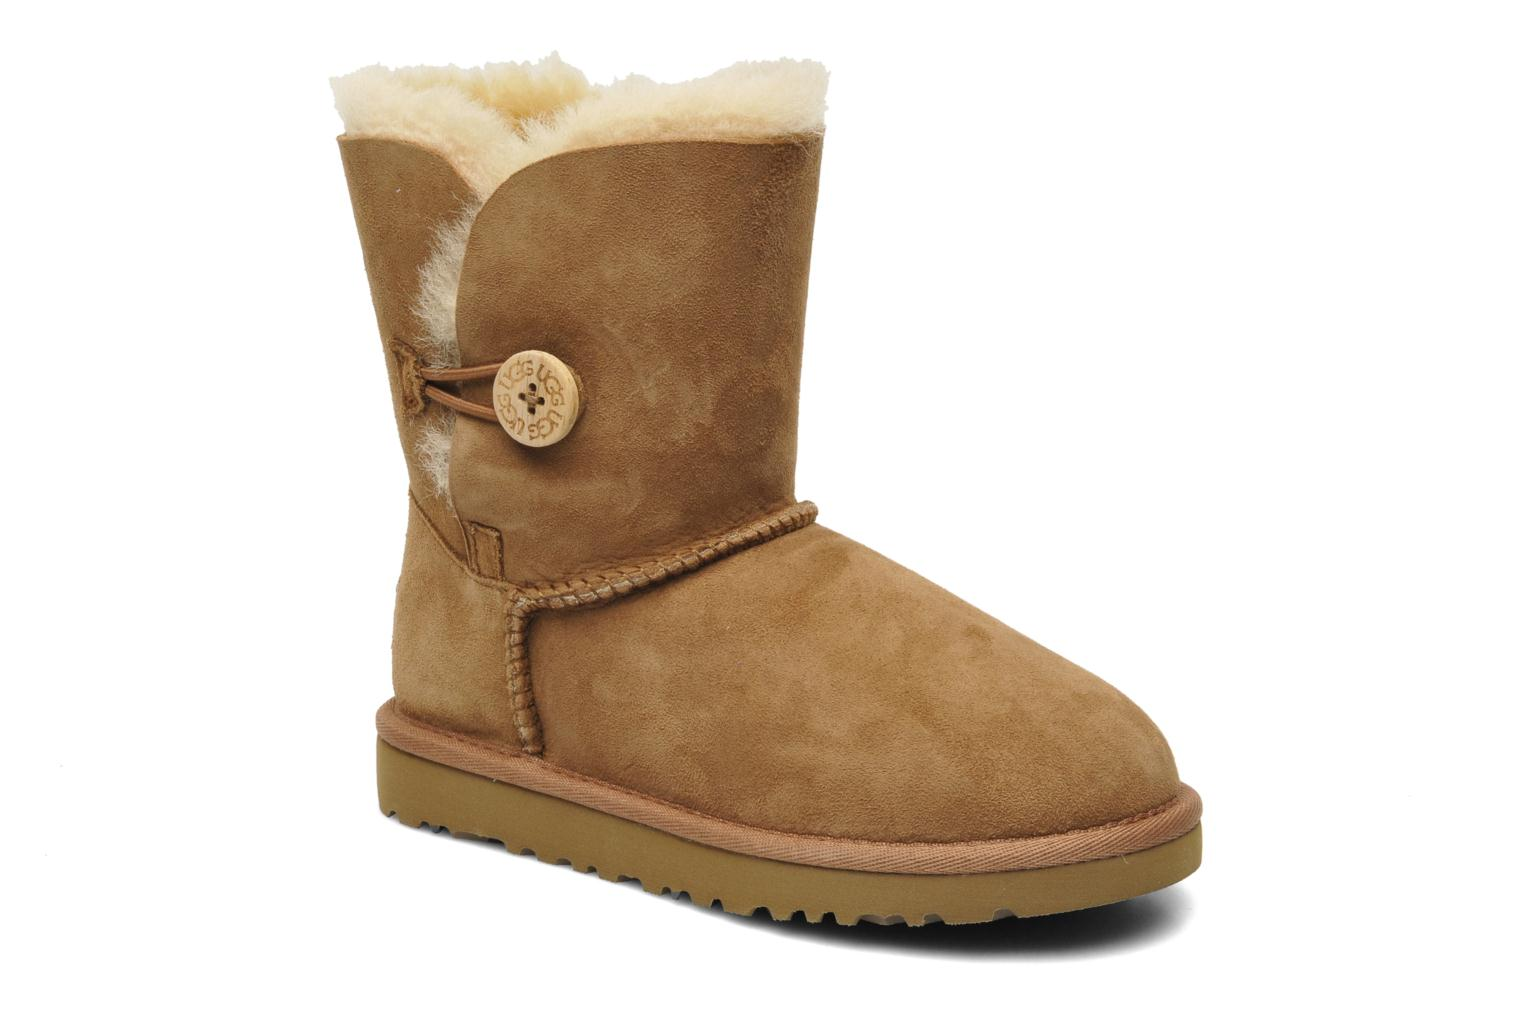 Bottes UGG Kid's bailey button Marron vue détail/paire